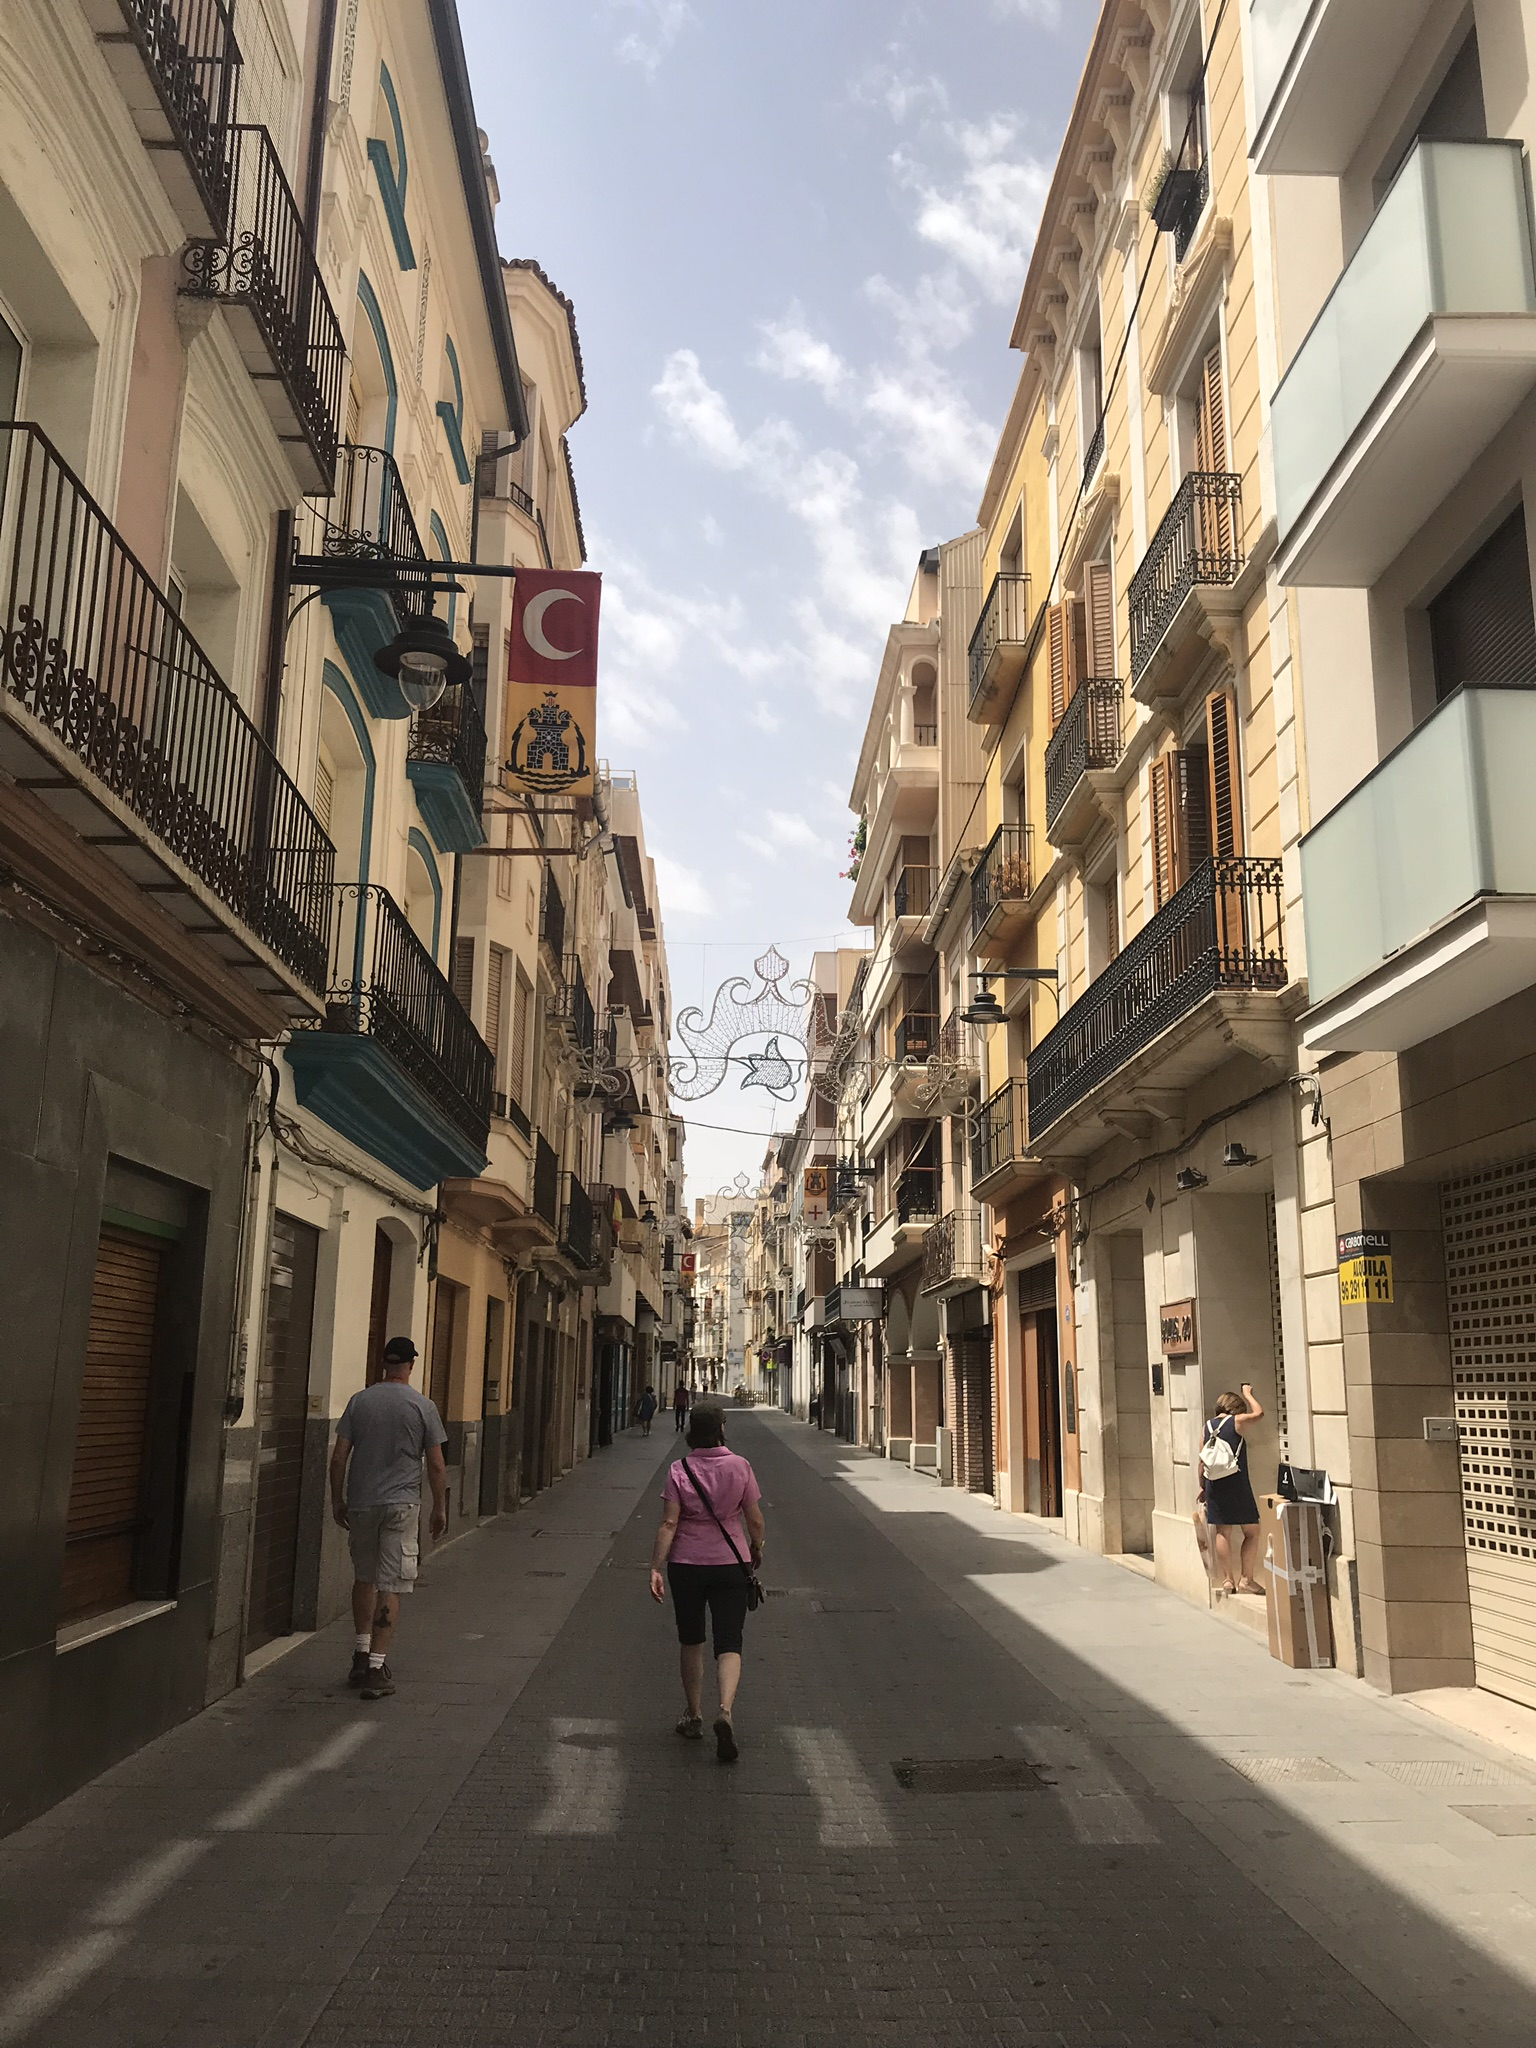 Spain 2018 Day 3 - Downtown